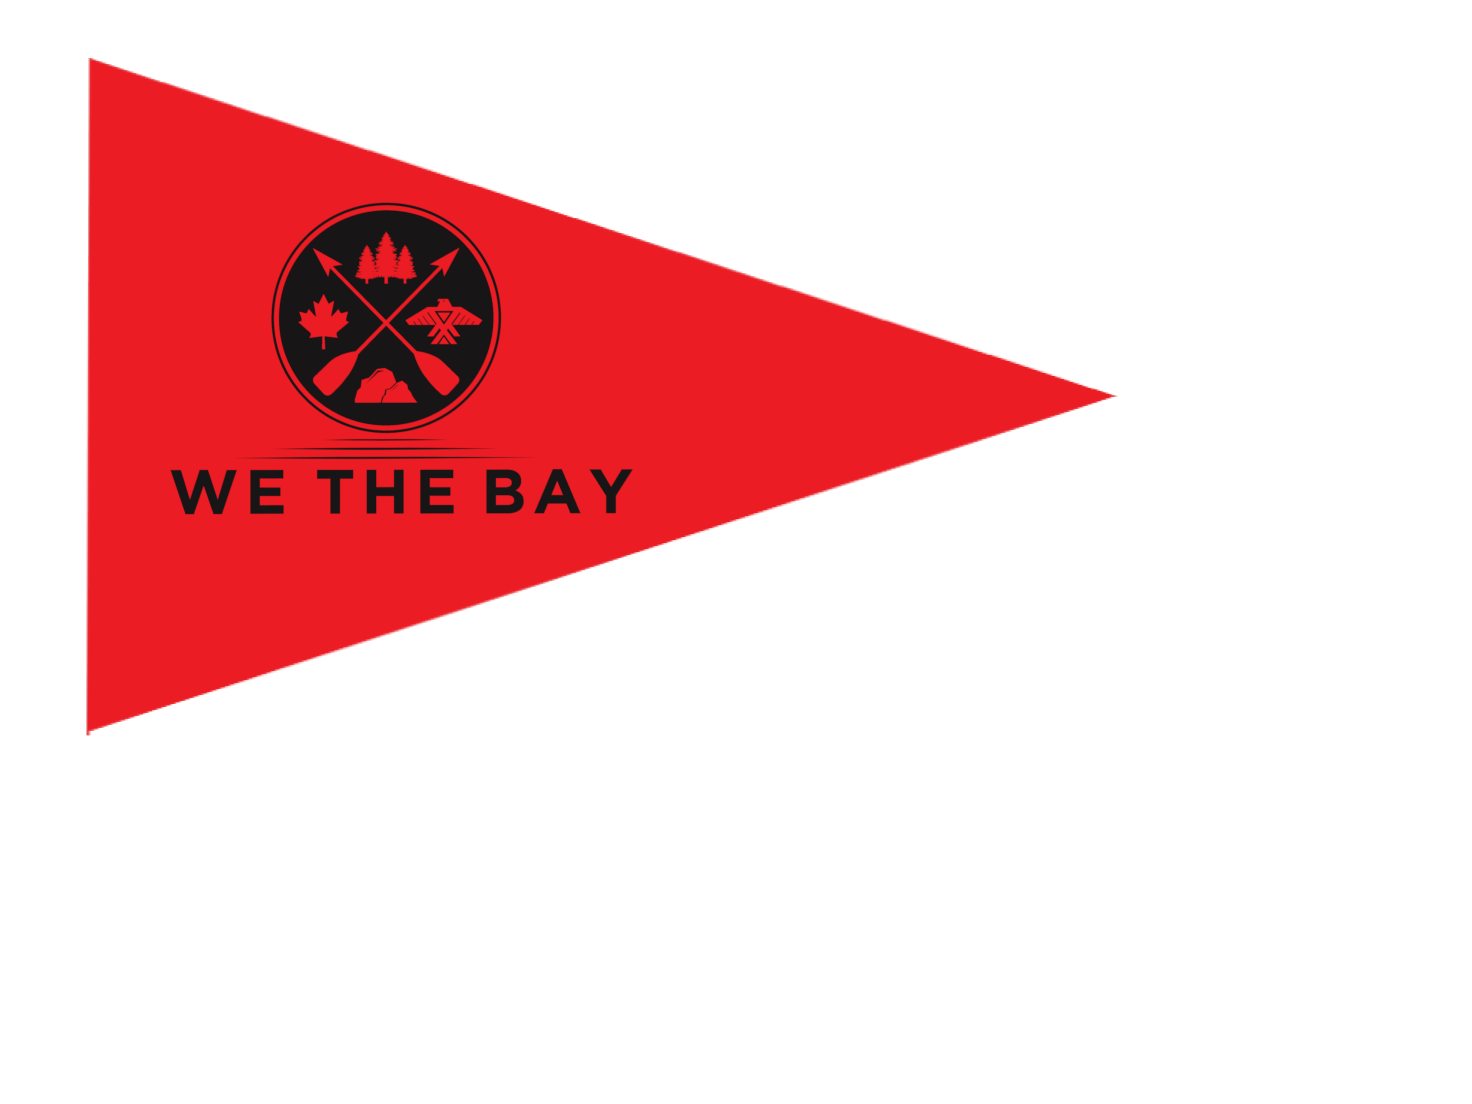 "WE THE BAY - 12"" x 18"" Boat Flag"